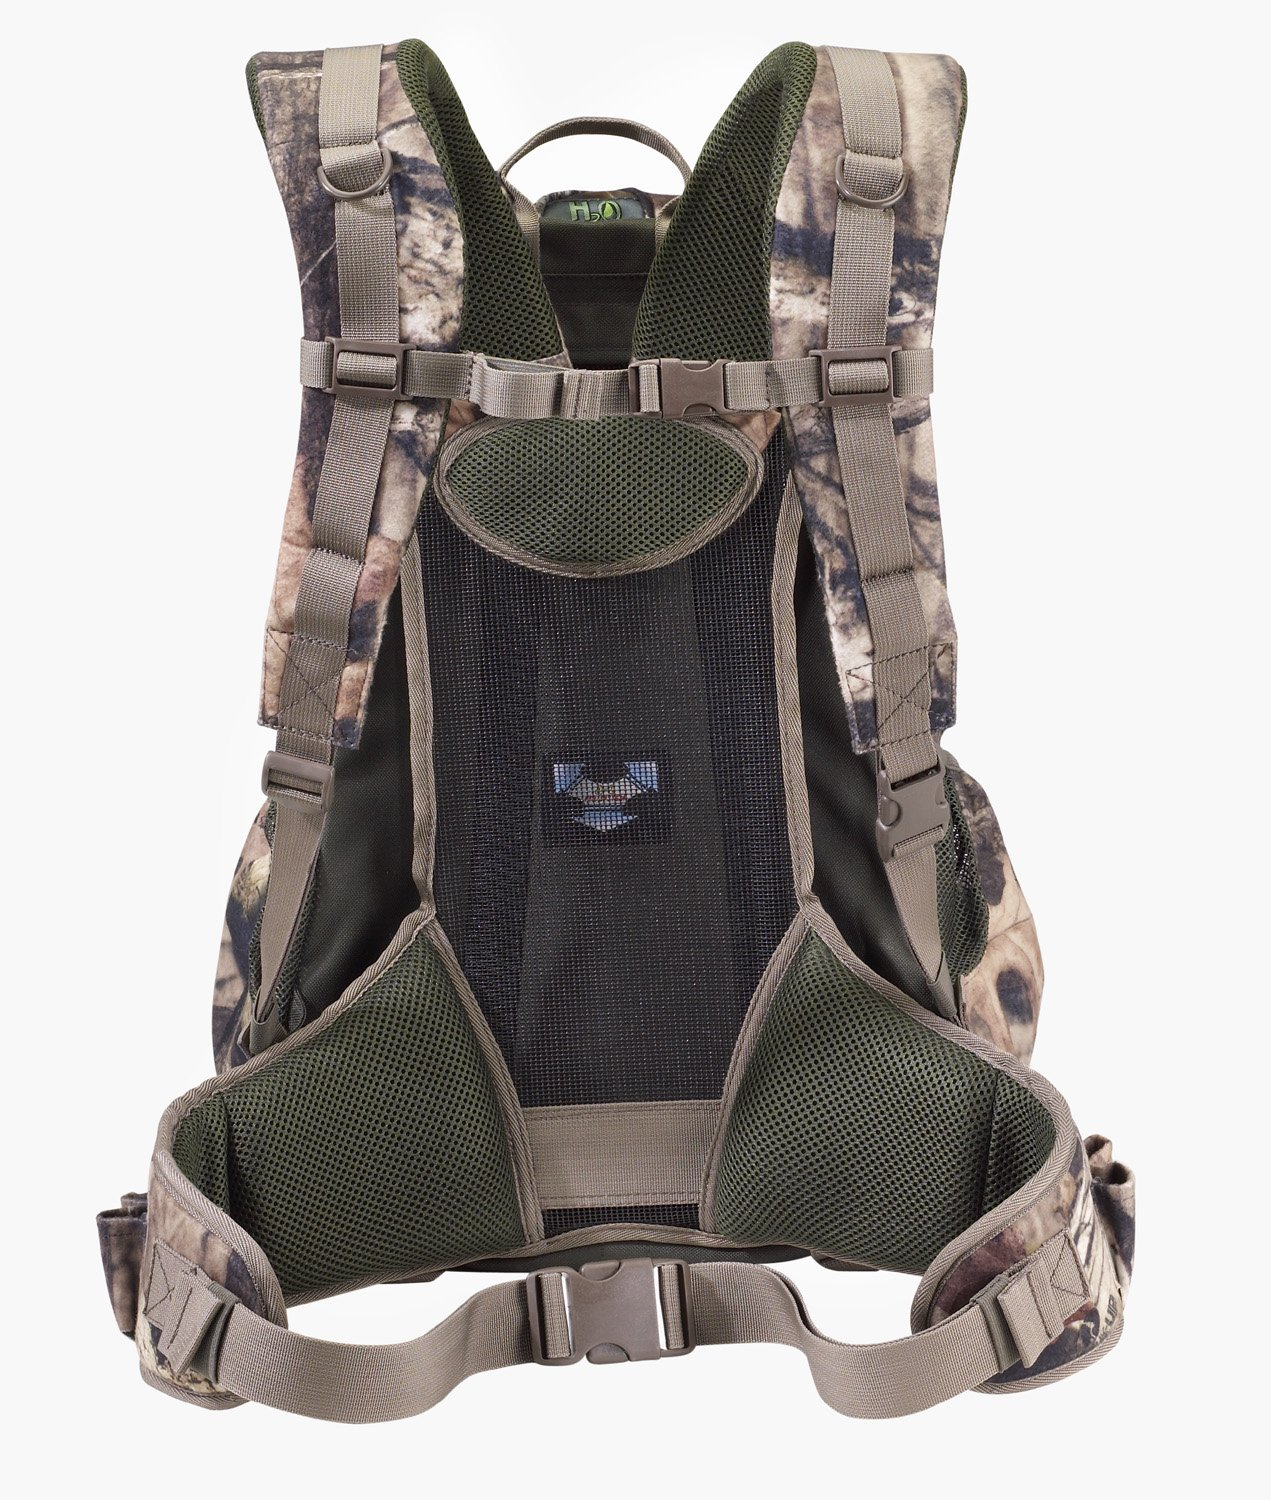 Lewis N Clark Crosshairs Break-Up Infinity Hydro Rifle Day Pack, Mossy Oak by Lewis N. Clark (Image #4)